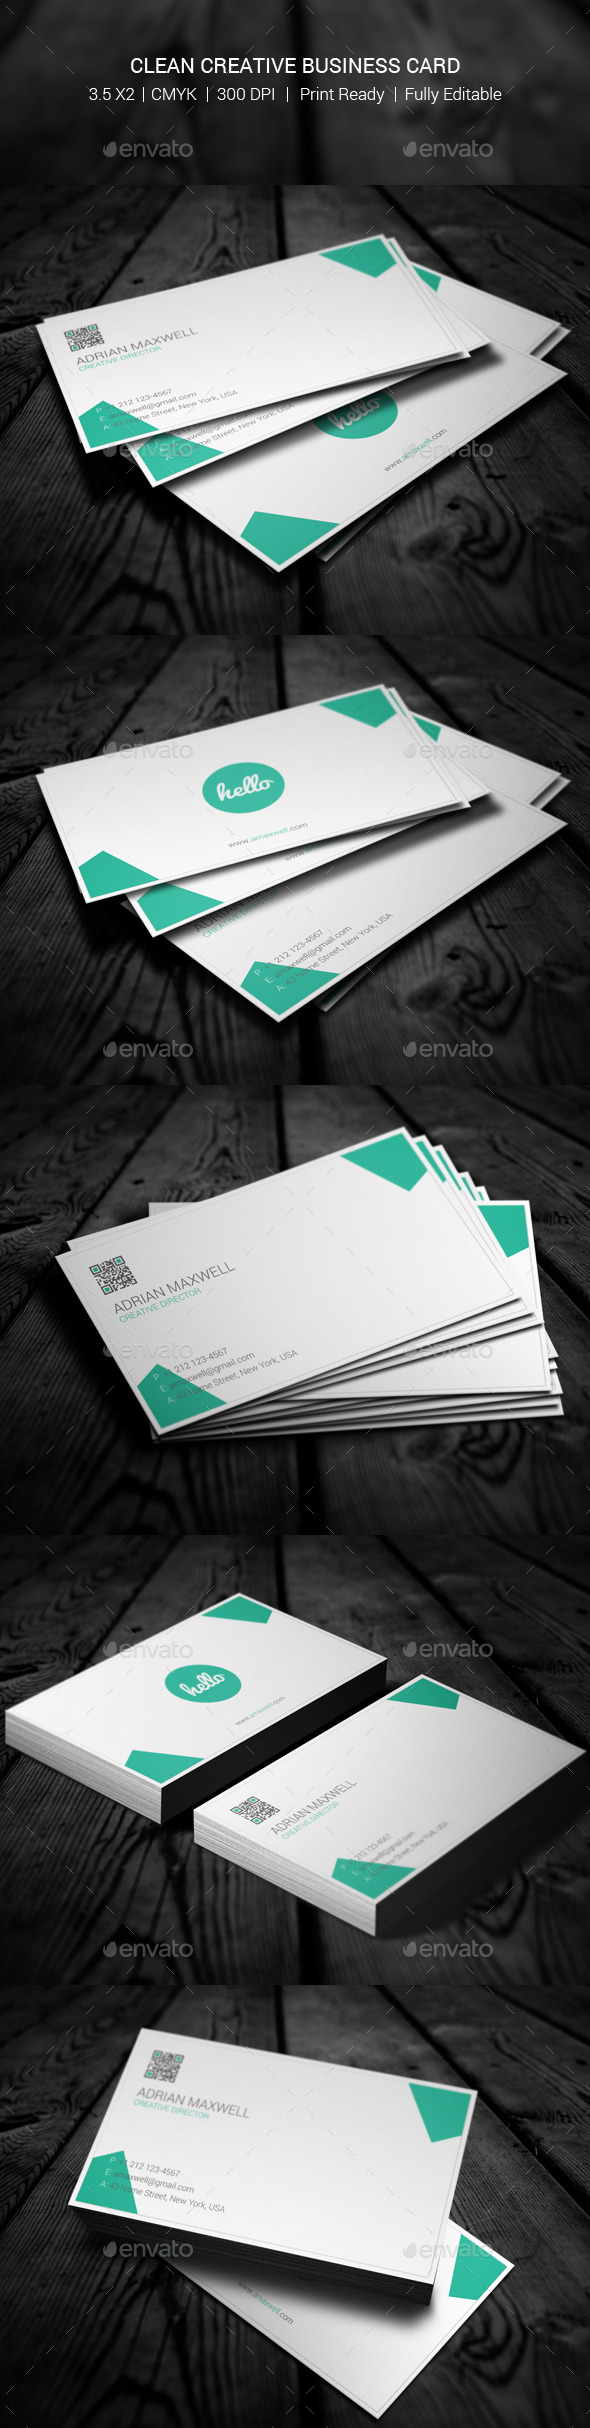 GraphicRiver Clean Creative Business Card 11011925